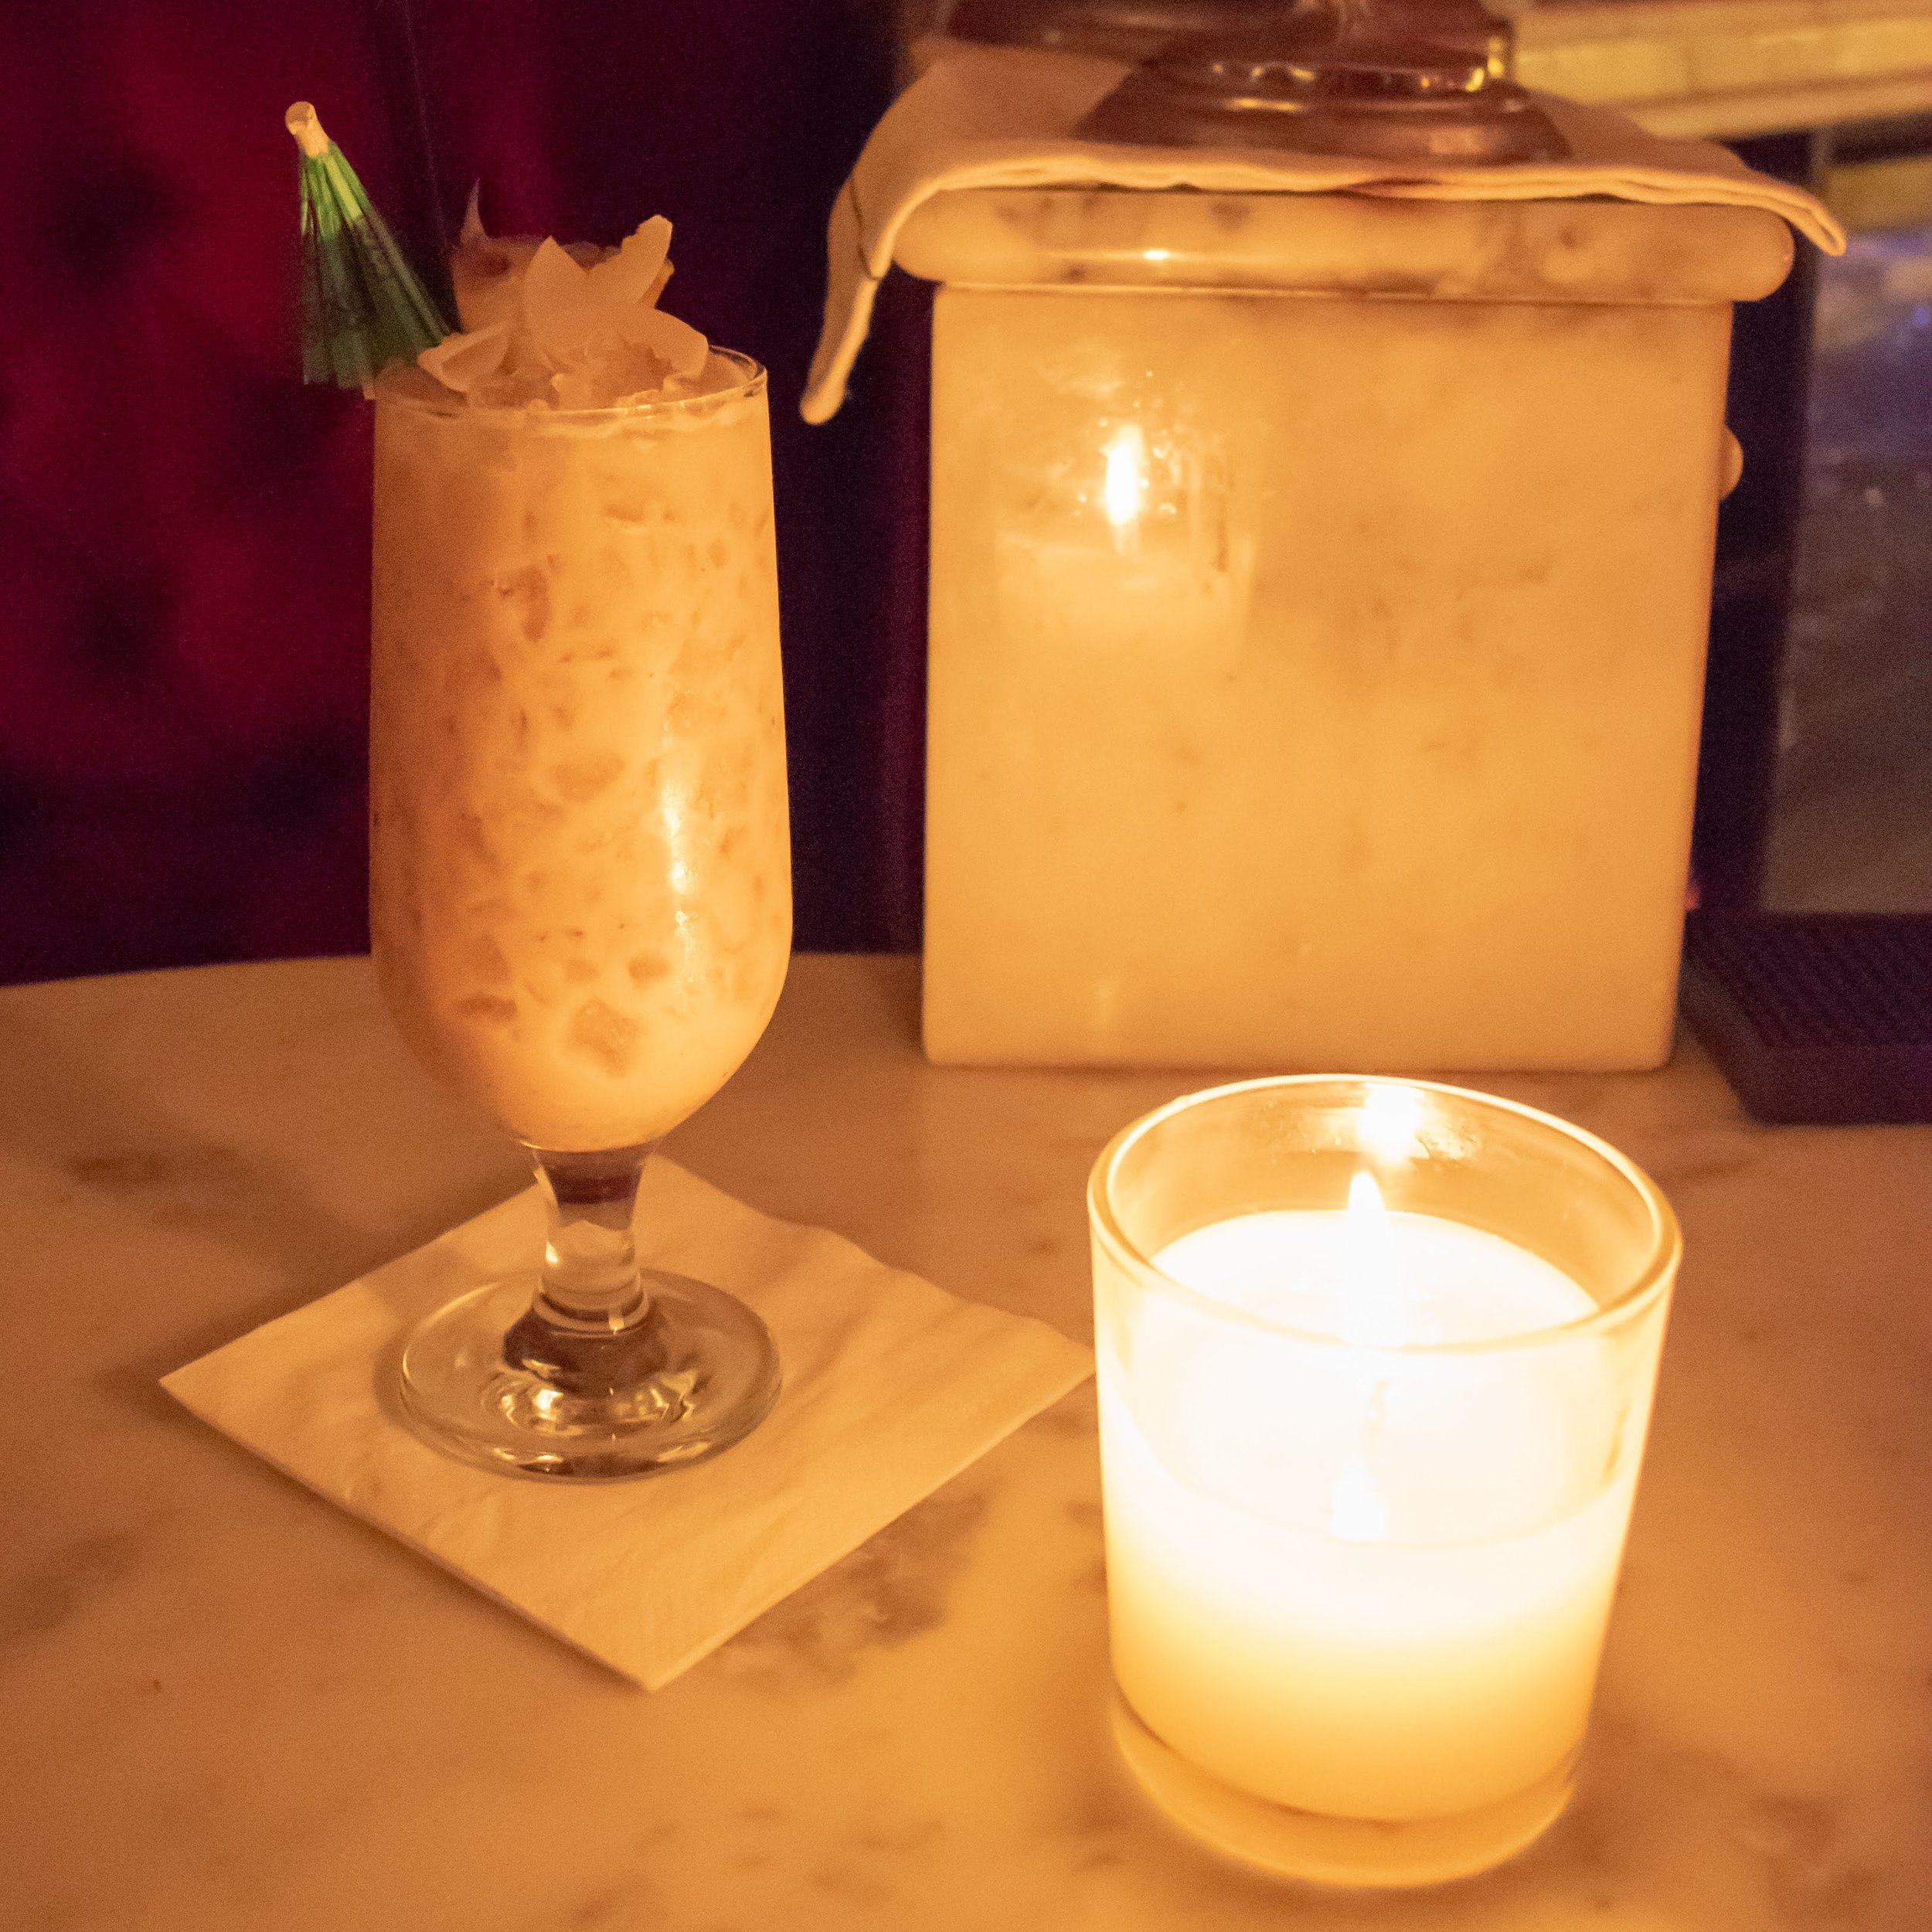 uprooted-traveler-dublin-cocktail-ireland-vegan-guide-the-liquor-rooms.jpg